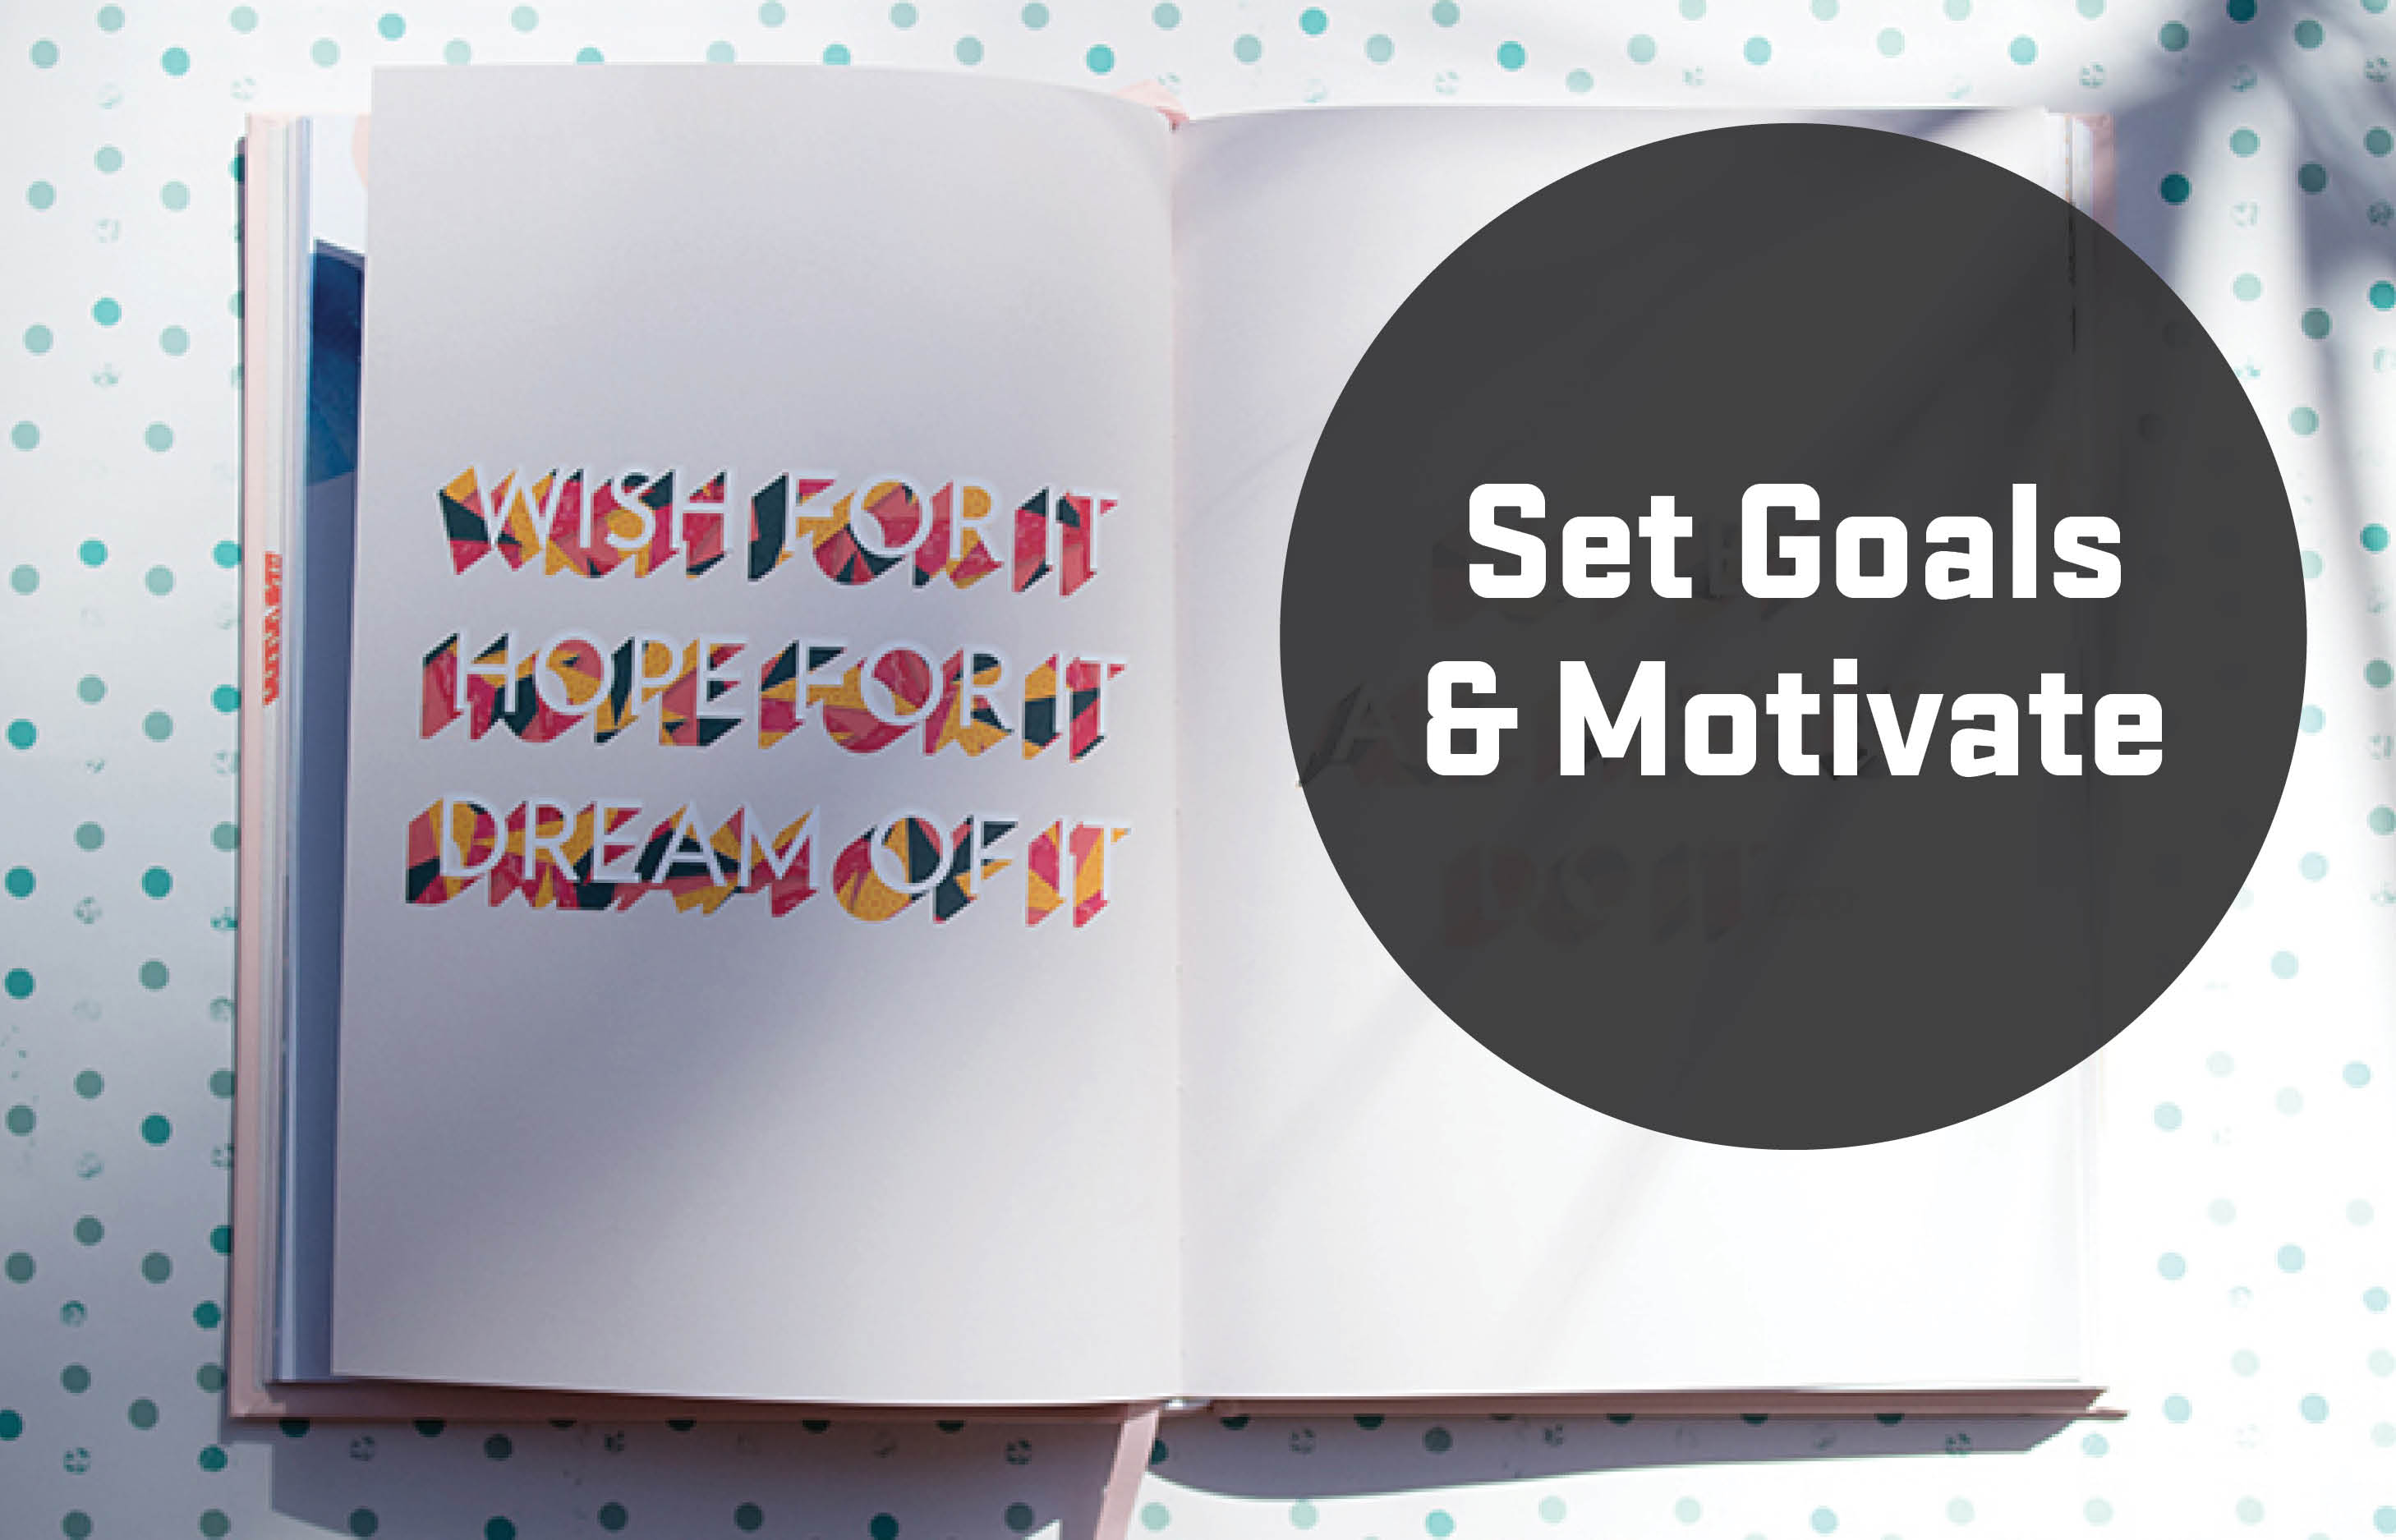 Set goals and motivate